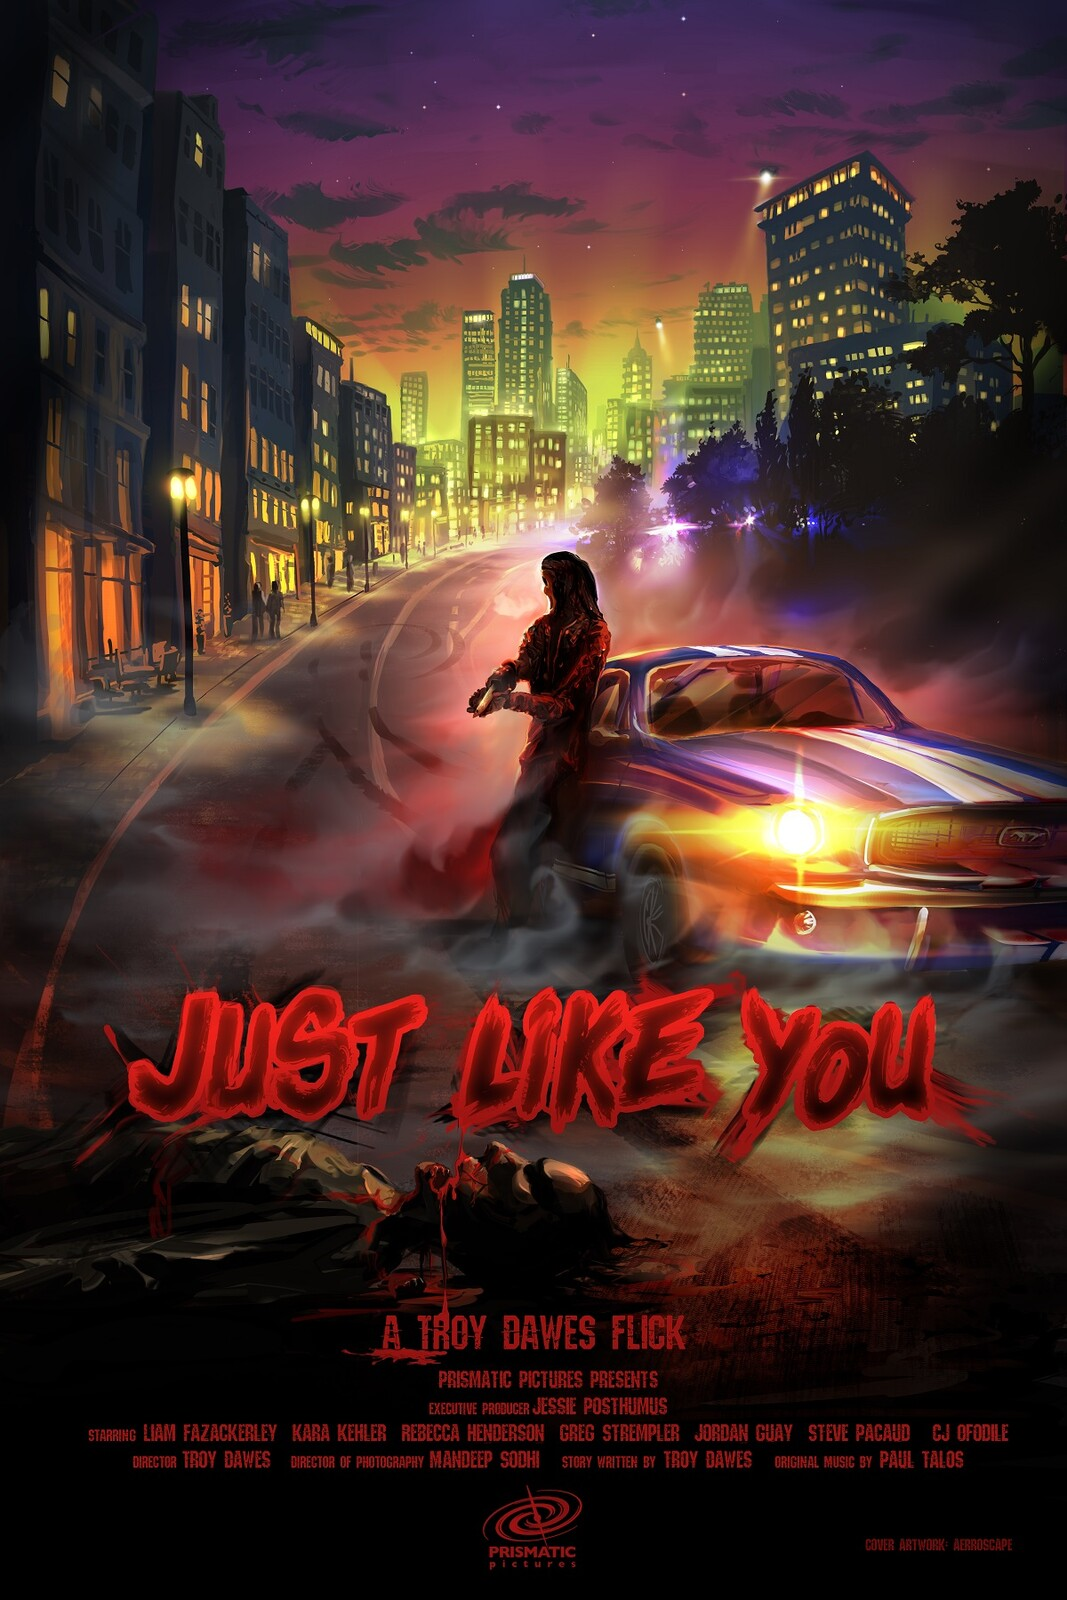 Just Like You poster with titles